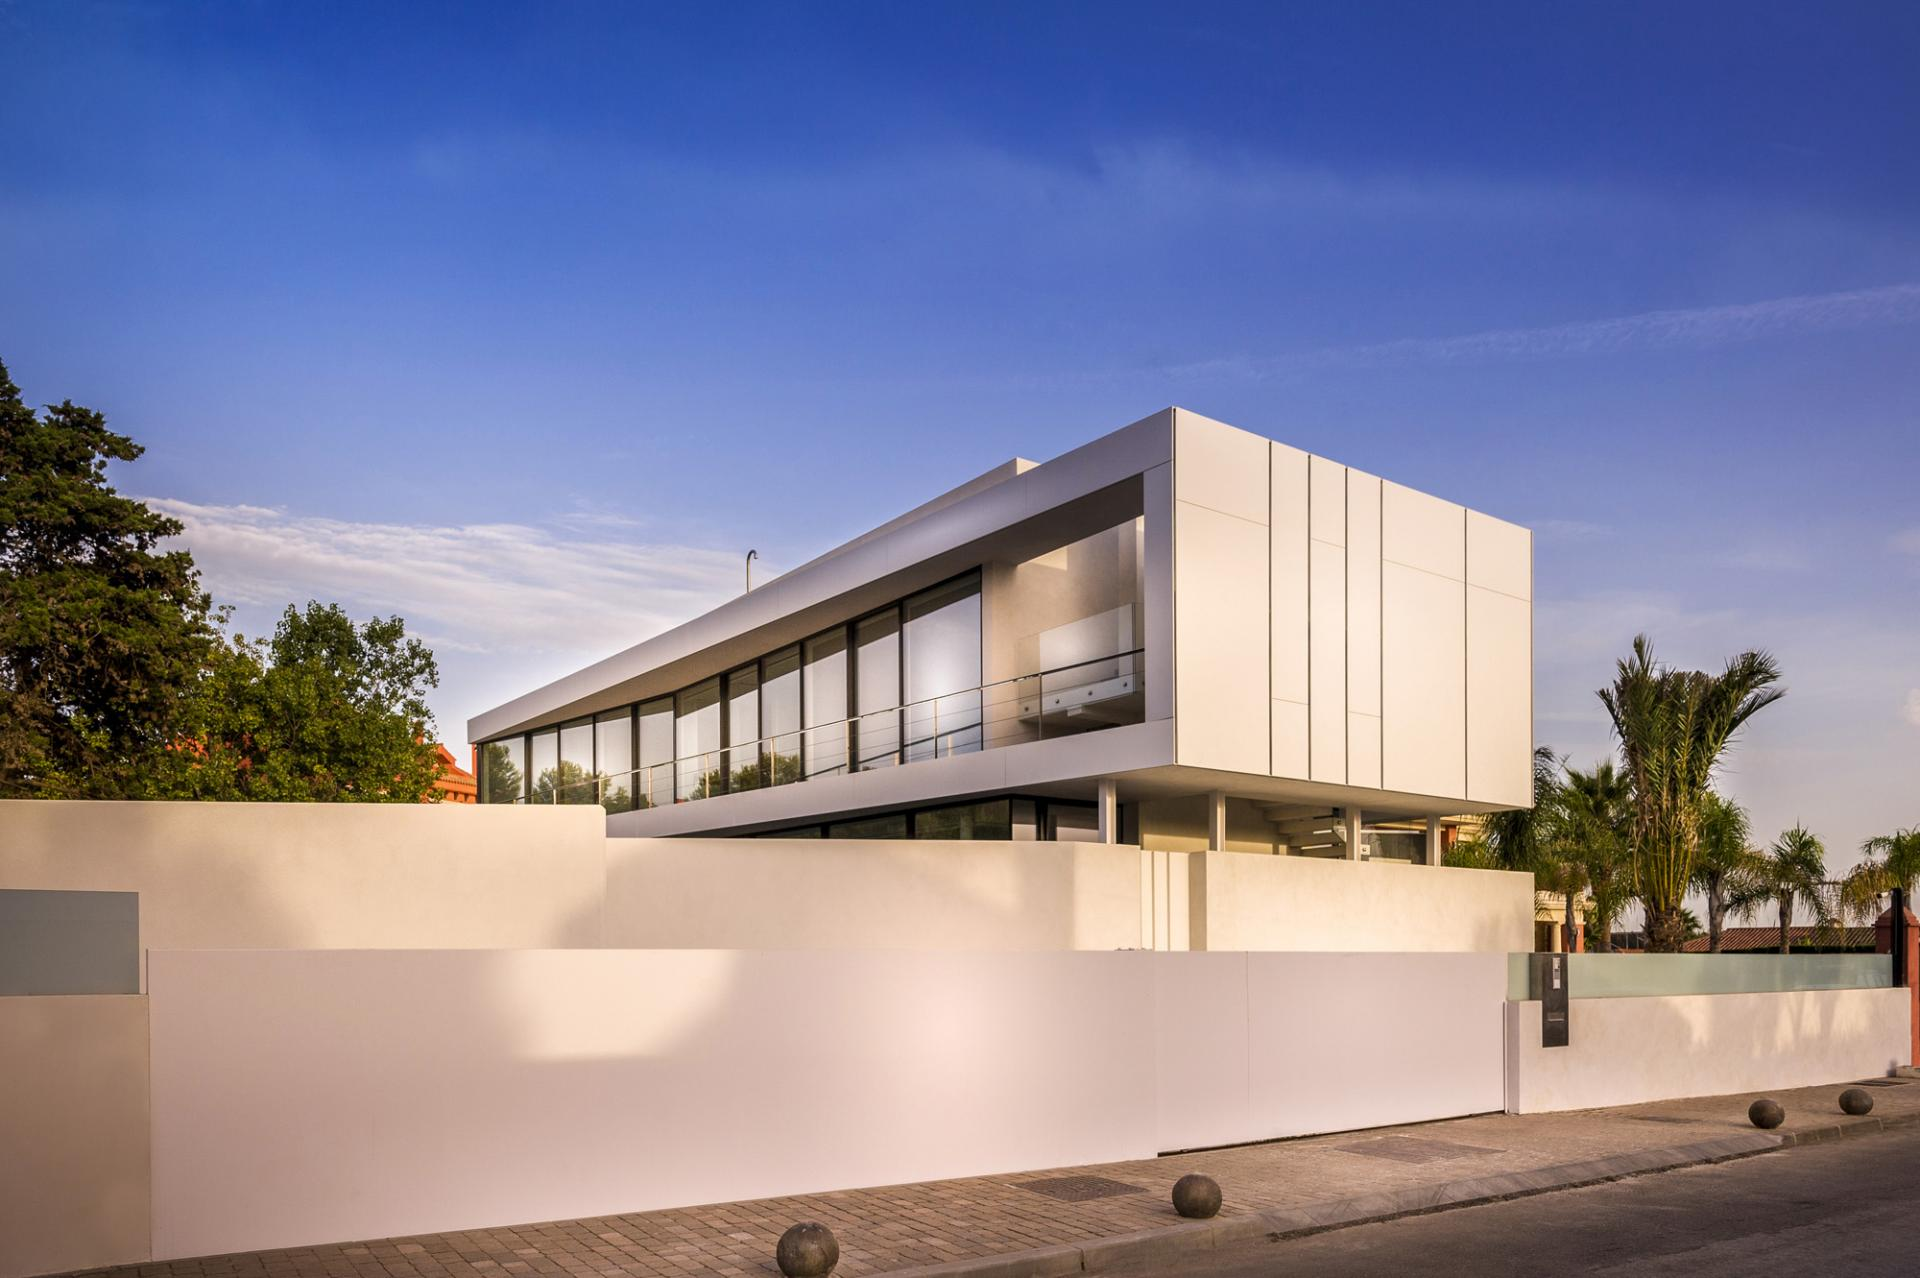 Modern White Exterior - A cool beachfront villa with geometric architecture